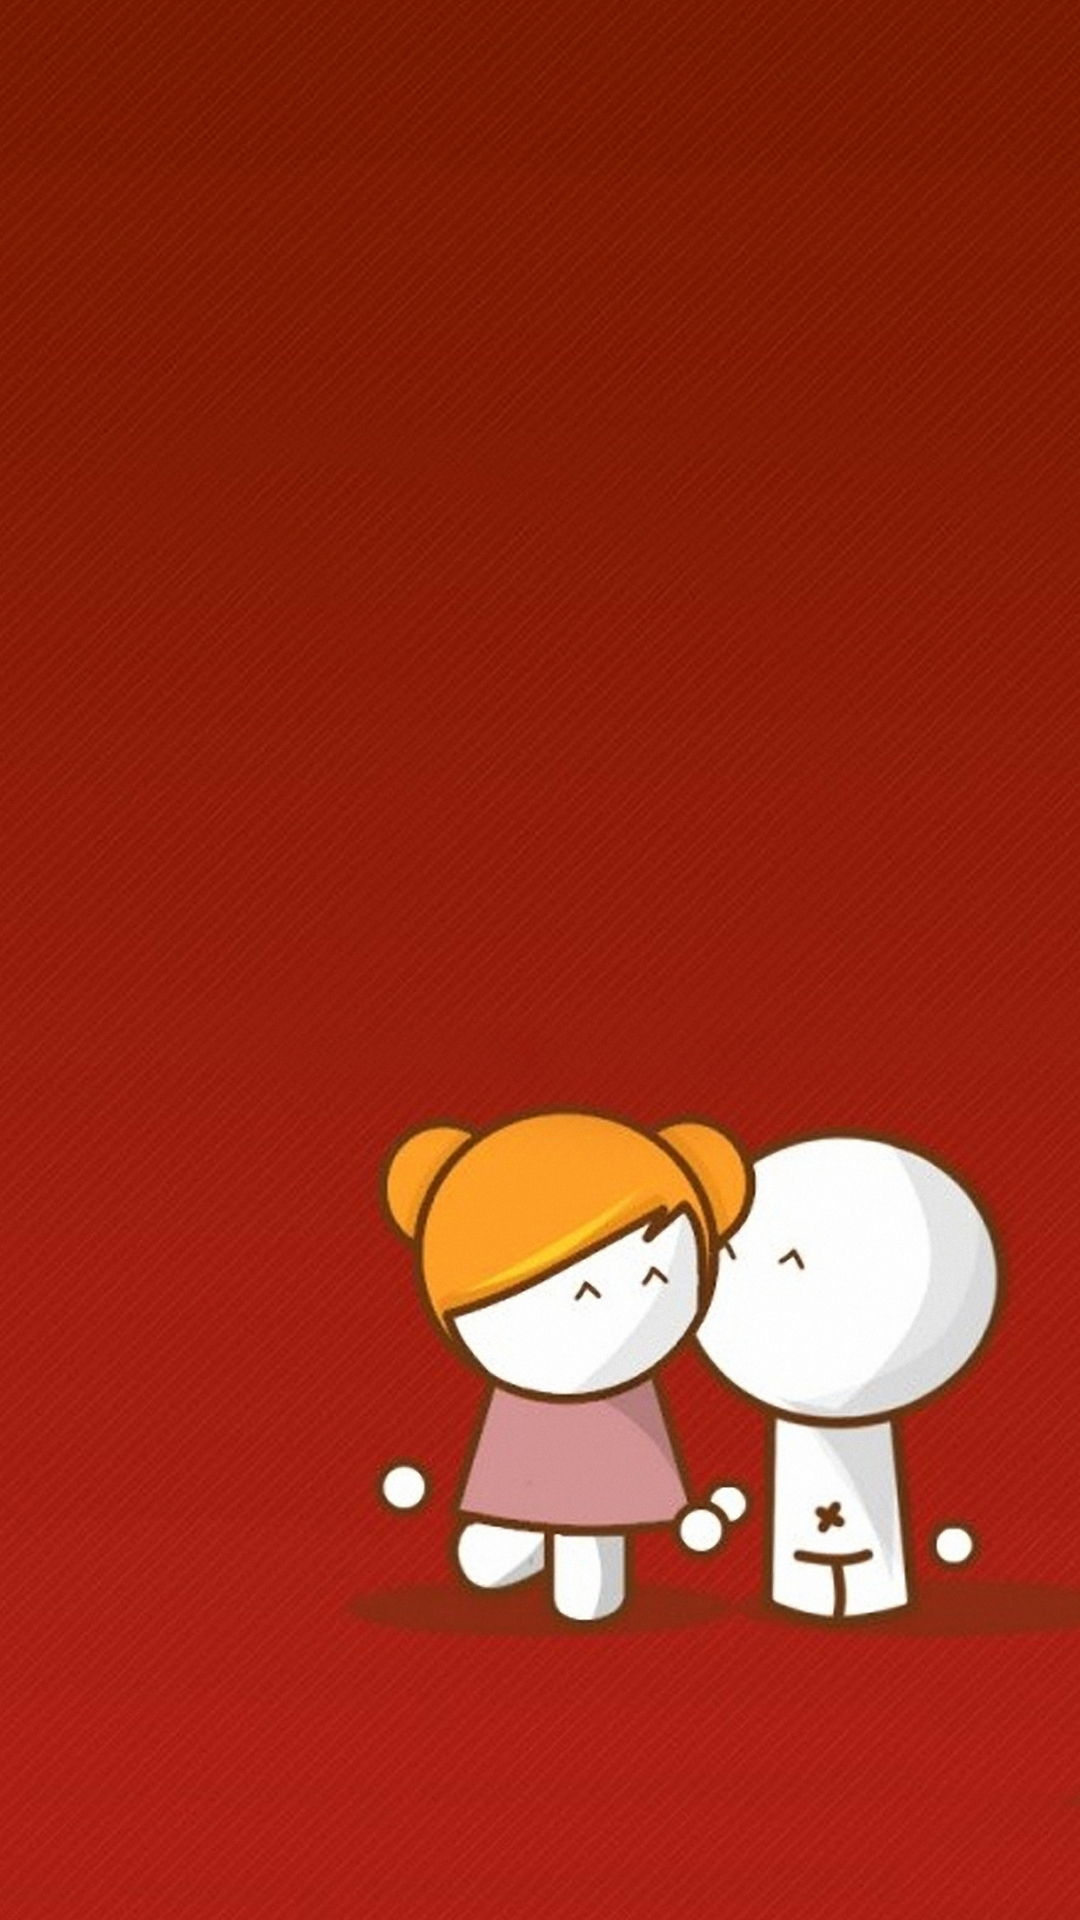 hd cartoon wallpapers for mobile free 33+ - dzbc